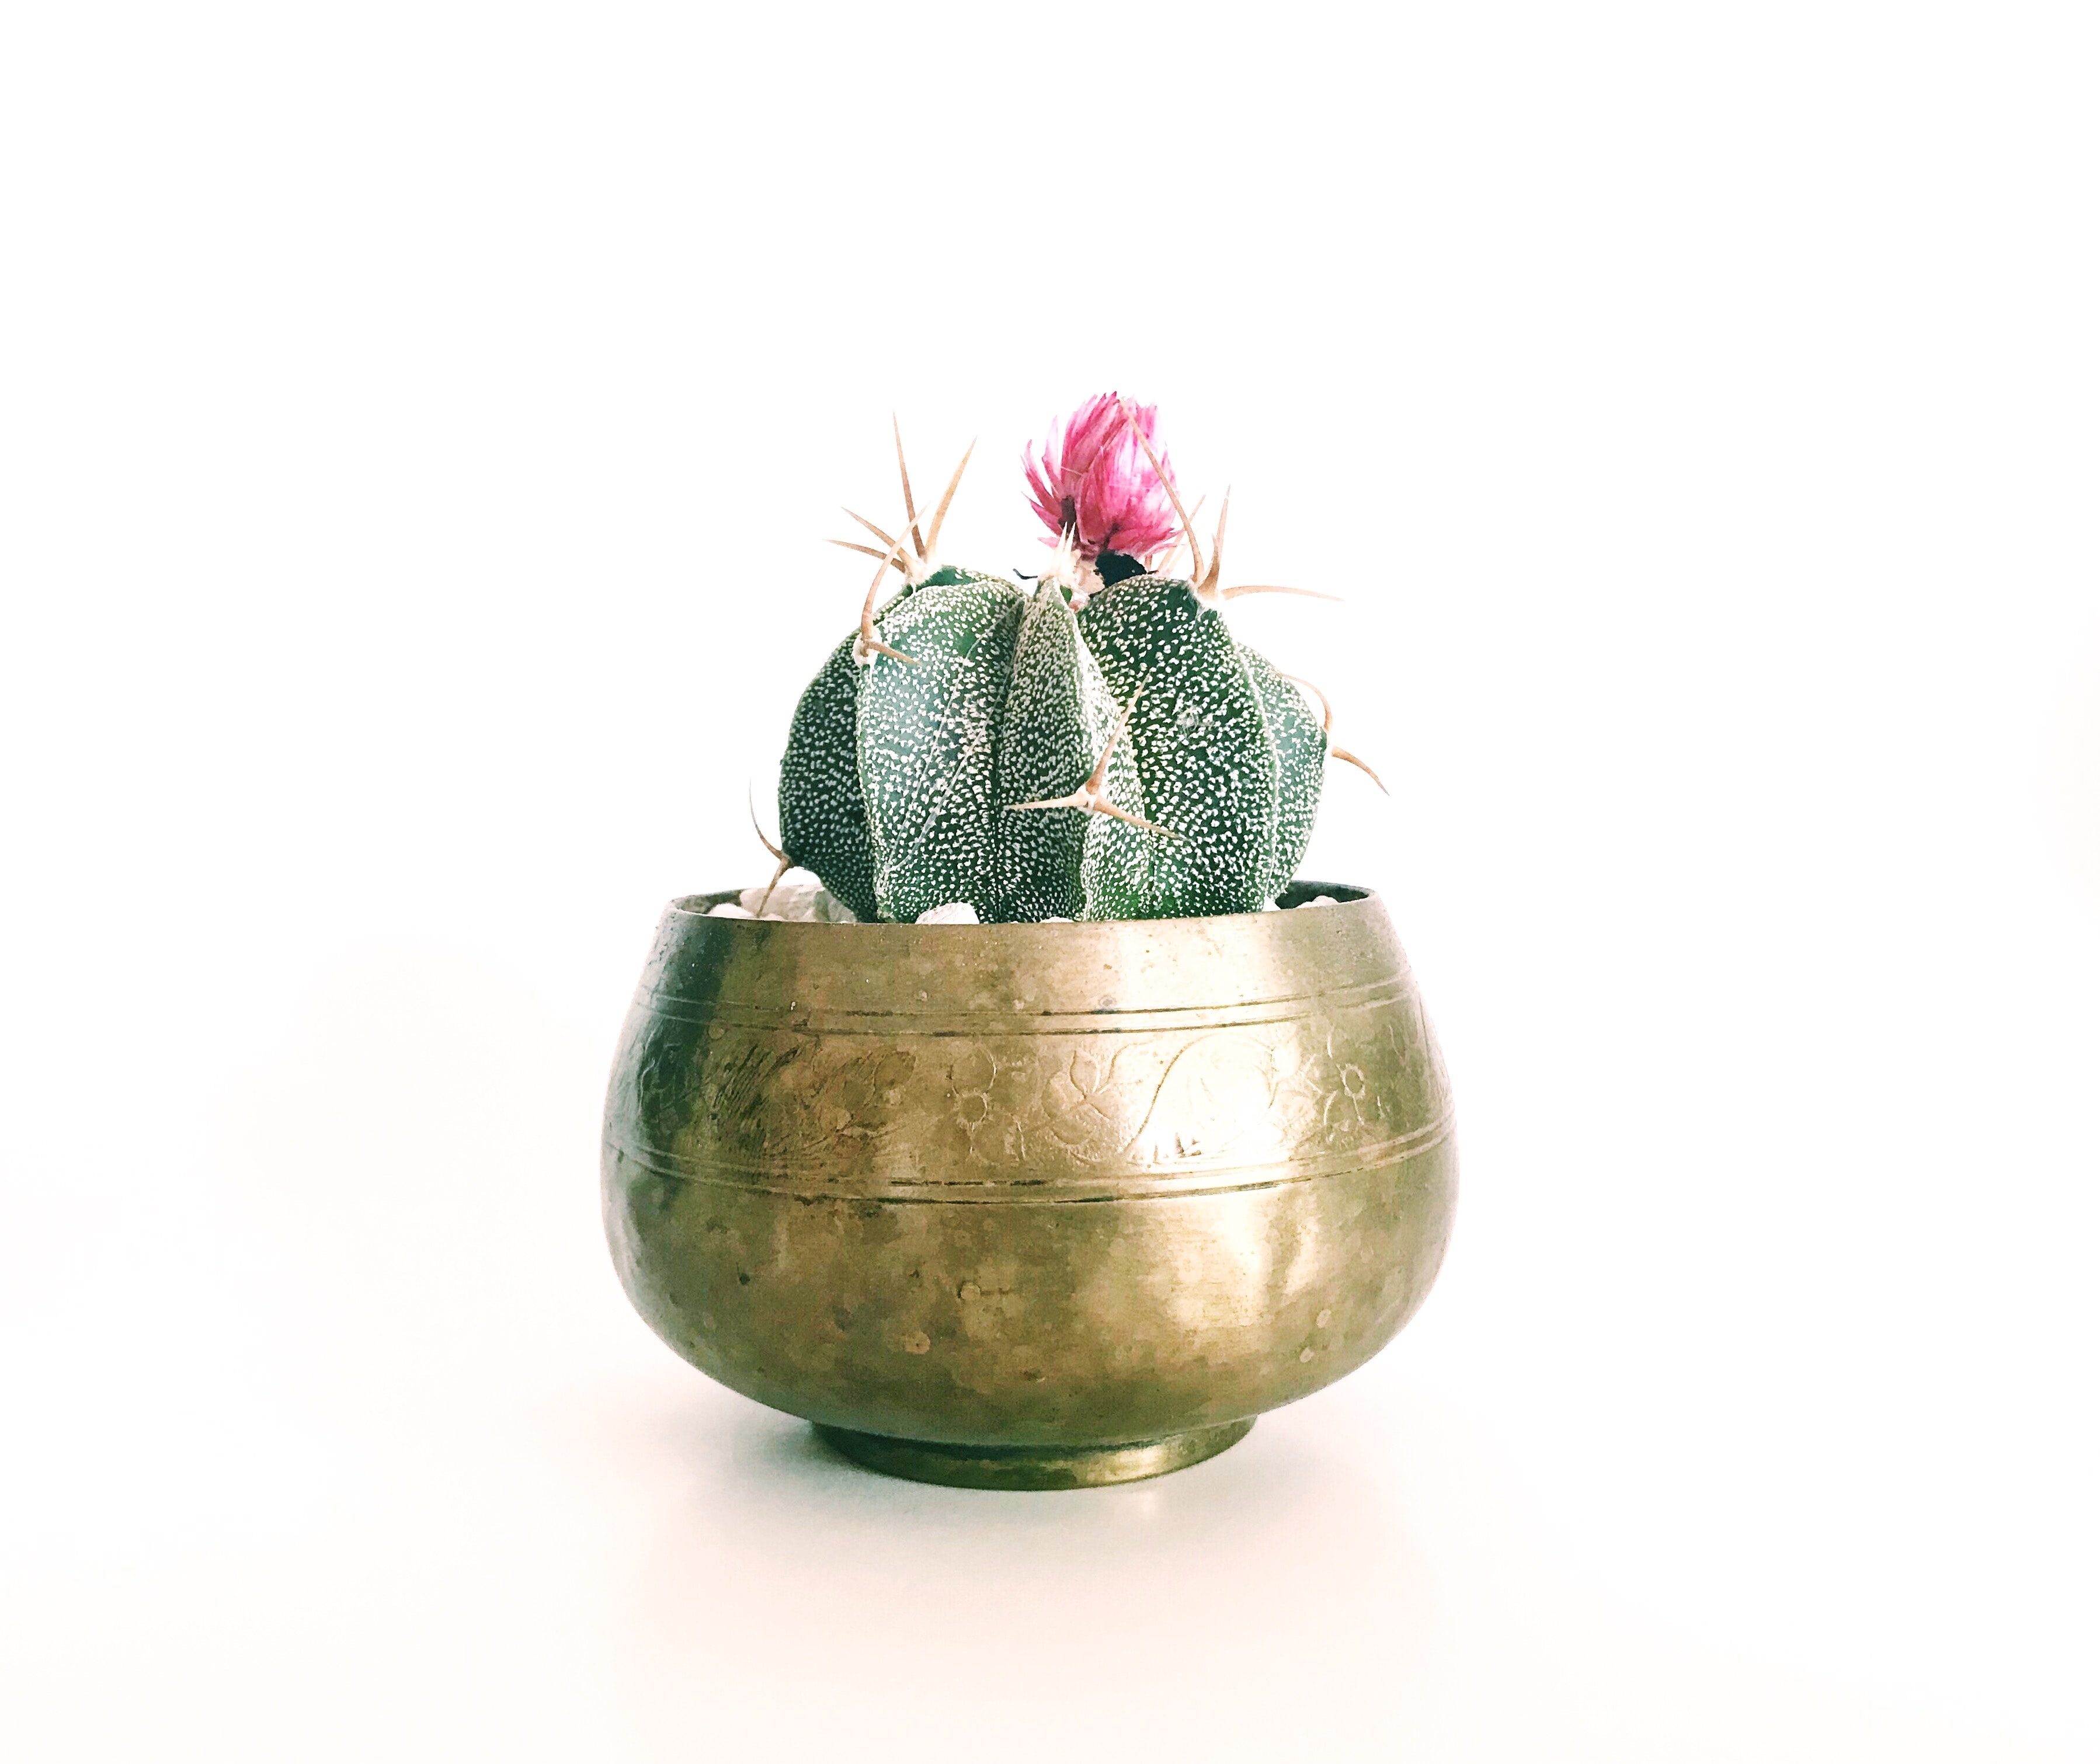 pink petaled flower cactus plant on brass-colored pot